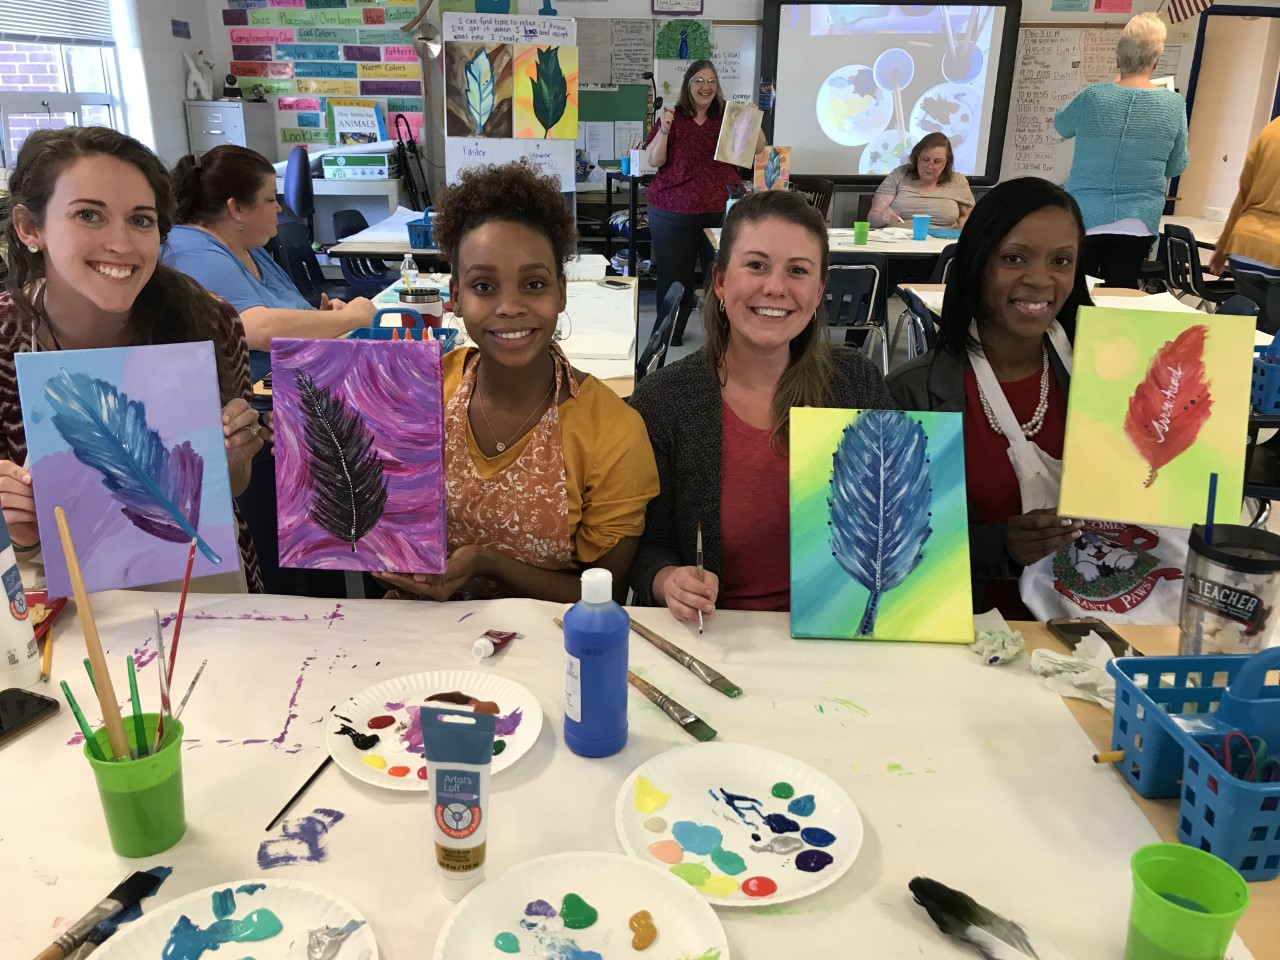 Lauren Curtis, Olivia Lowman, Julie Finucan, and Kimani Vaughan enjoyed a Paint Nite (afternoon) at Arrowhead Elementary School.